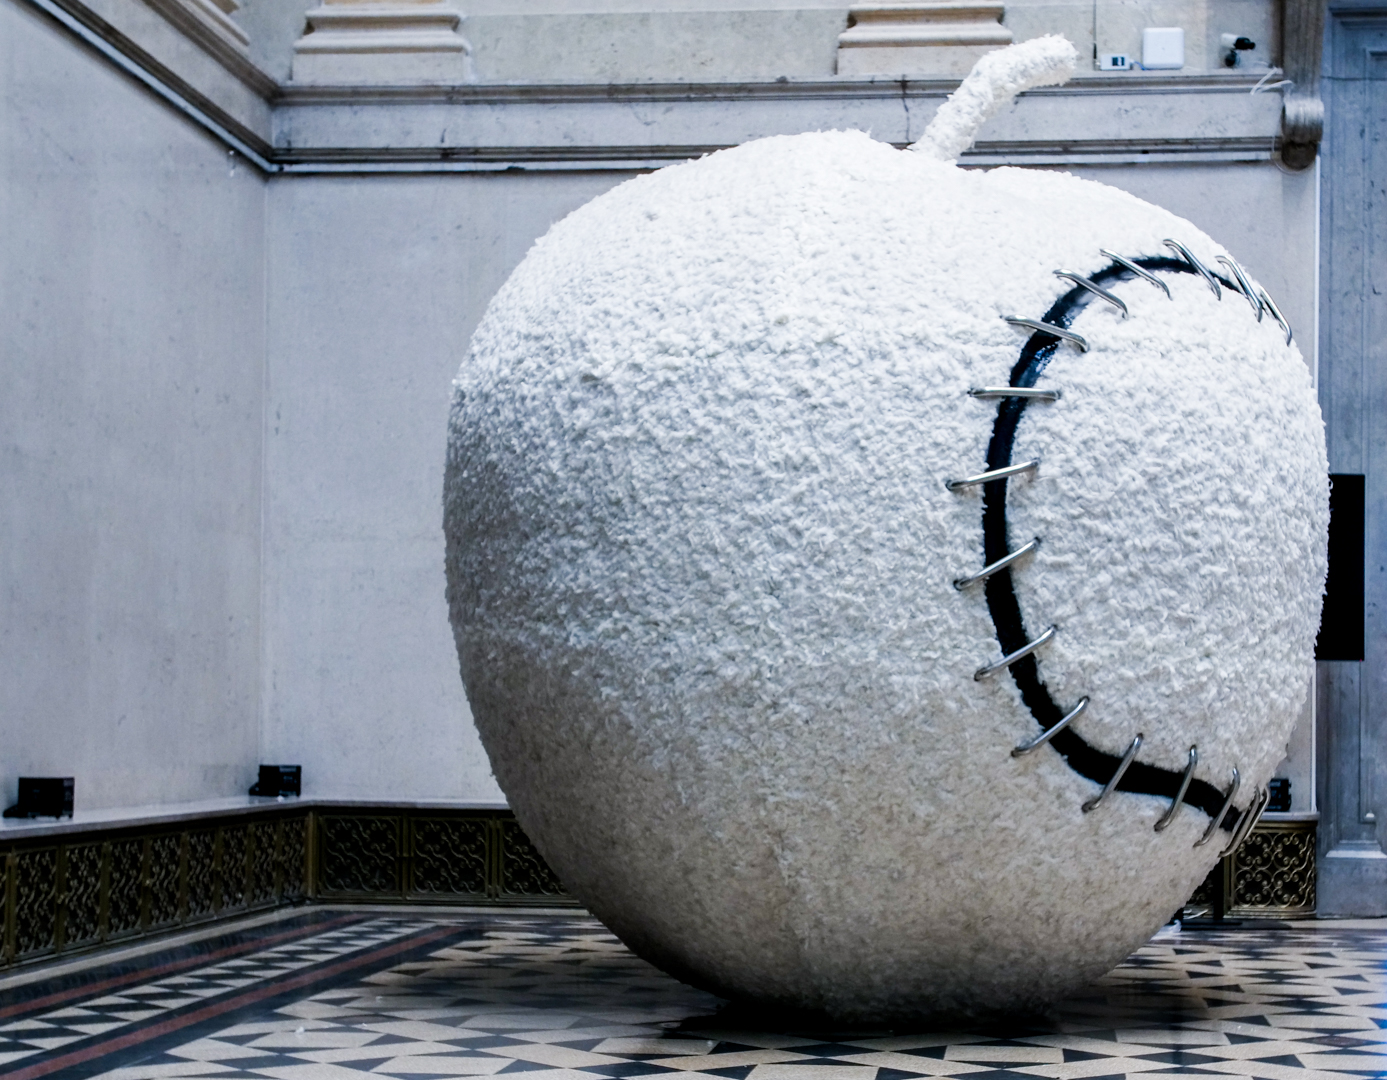 pistoletto_apple_made_whole_again_by_kata_to_th.jpg